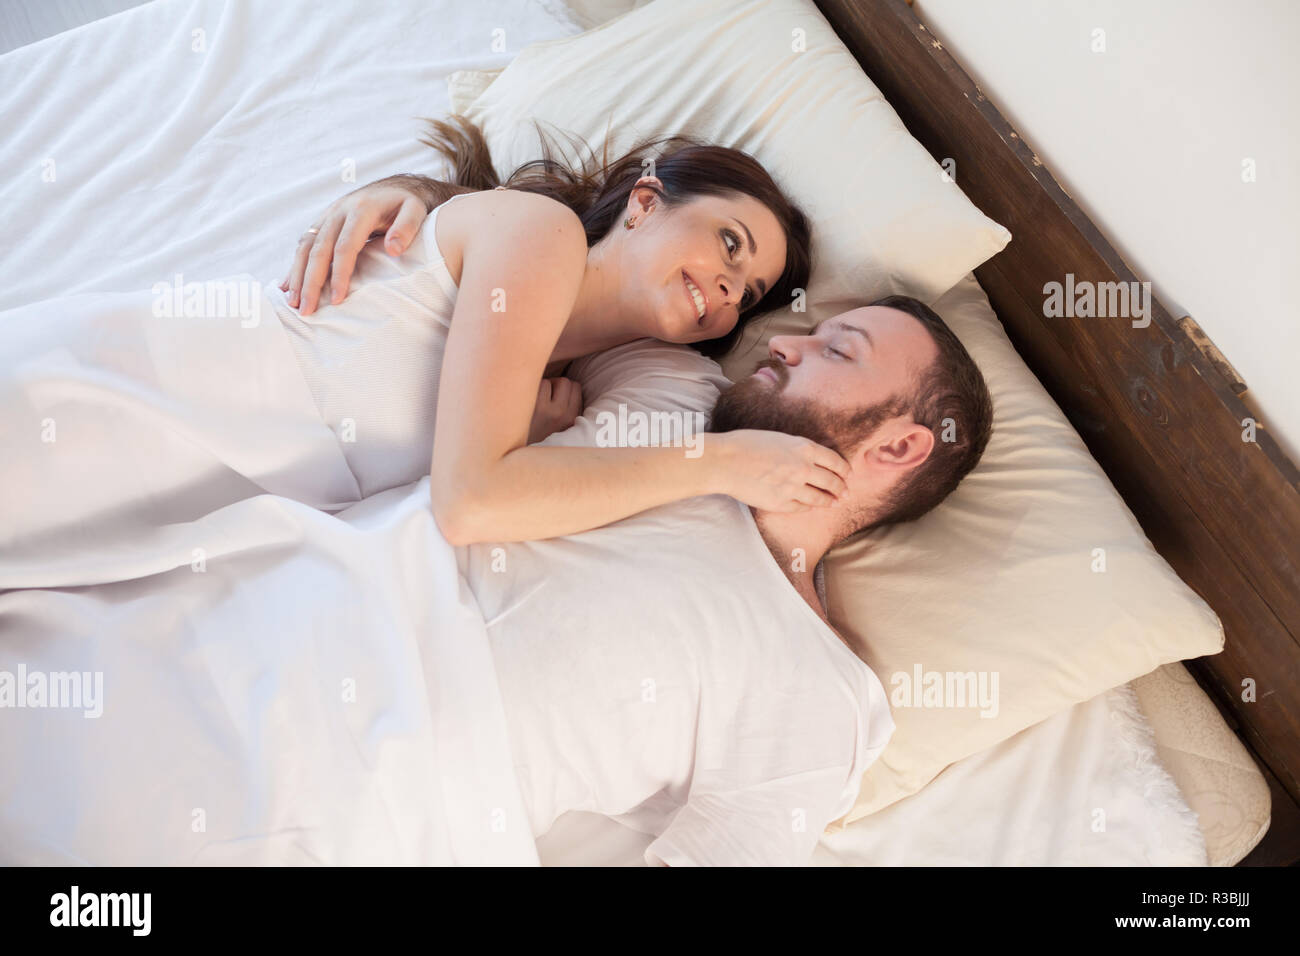 man and woman, husband and wife woke up in the morning after sleep - Stock Image